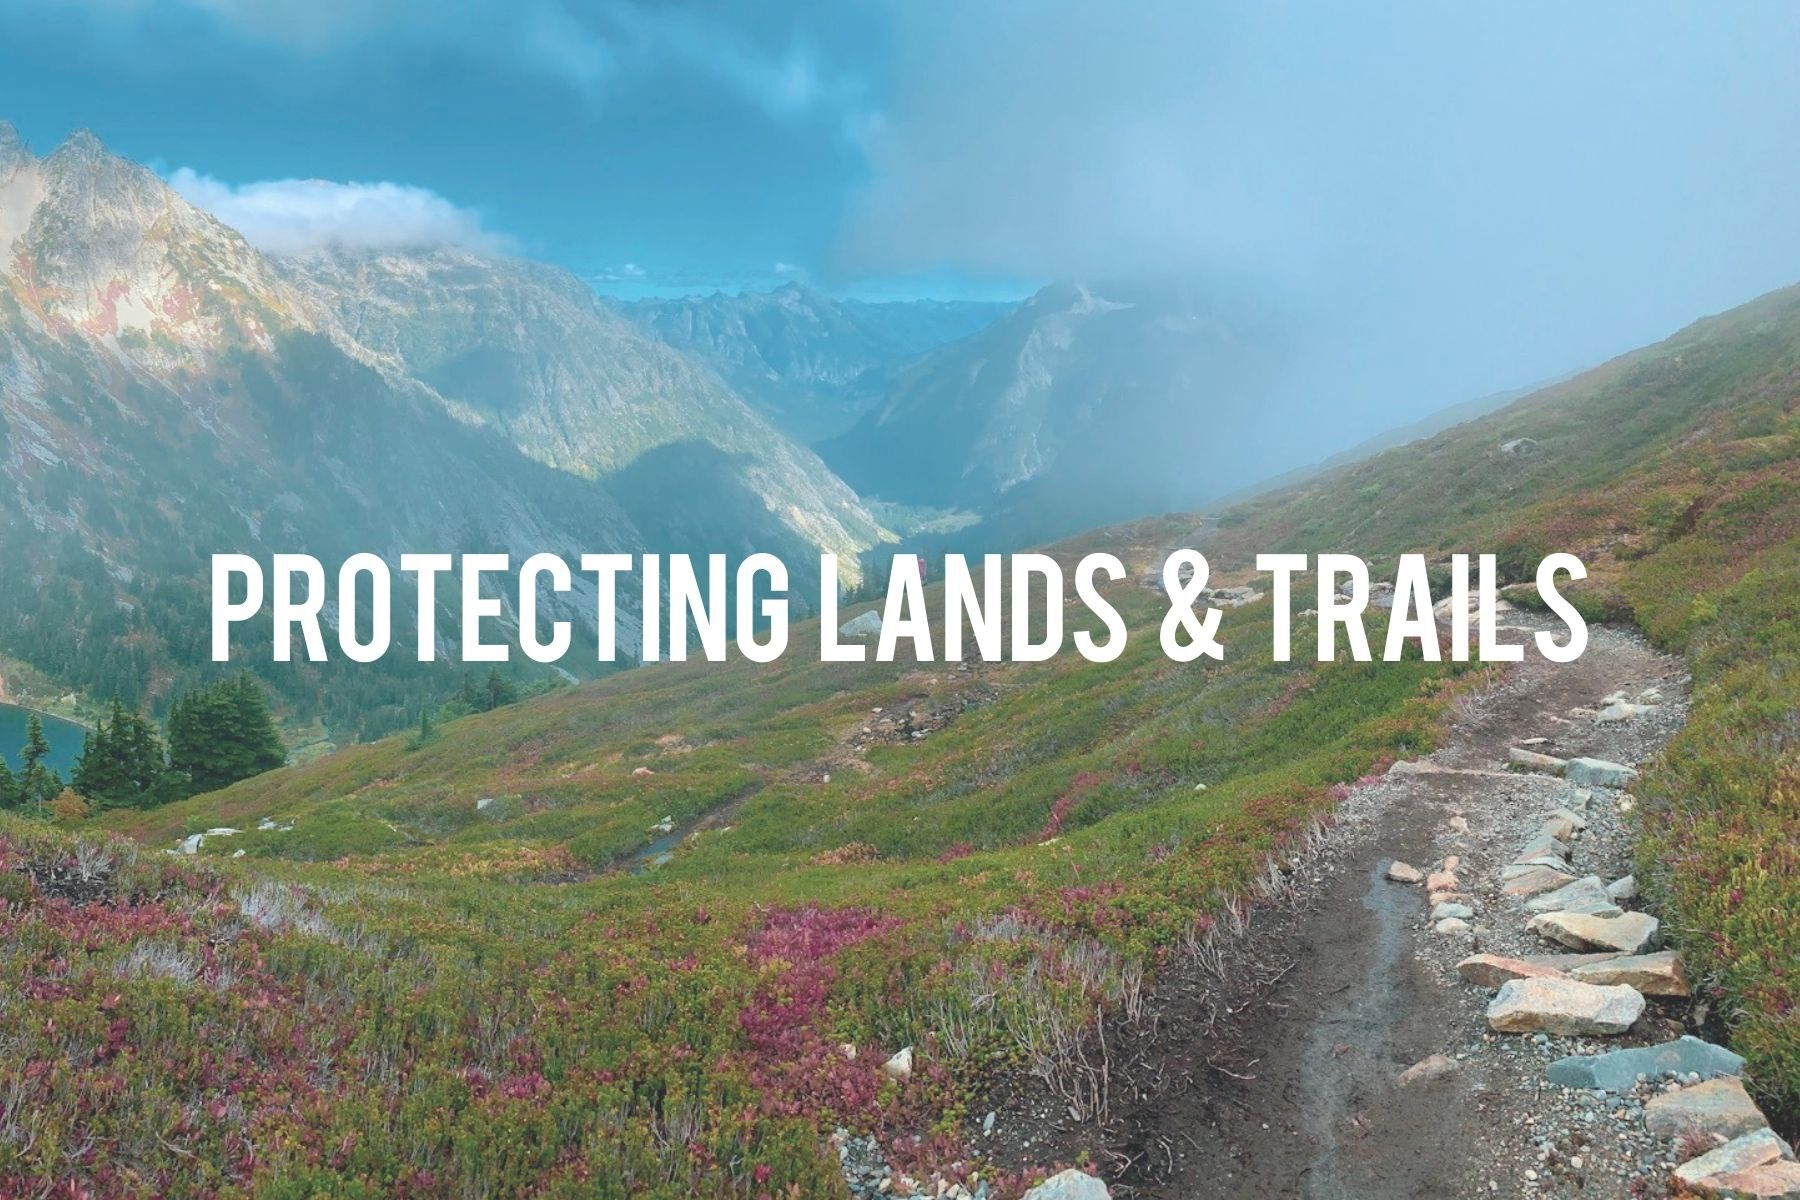 Protecting Lands & Trails.jpg